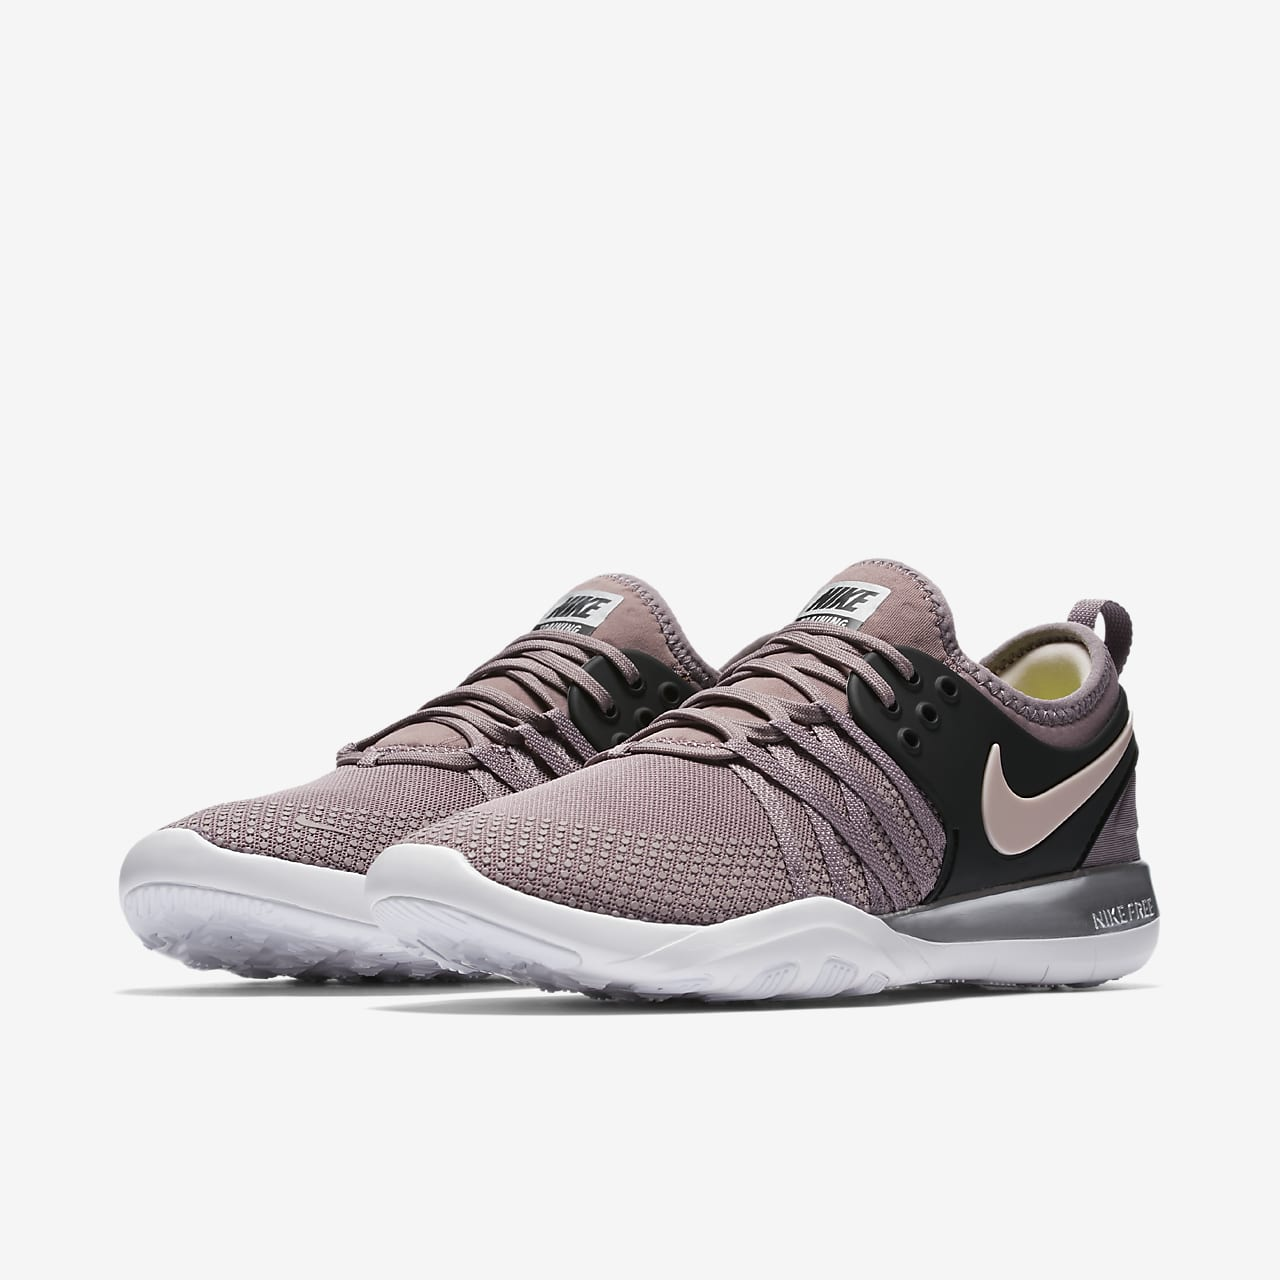 Arrepentimiento terminar alcanzar  Nike Free TR 7 Chrome Blush Women's Gym/HIIT/Cross Training Shoe. Nike IN